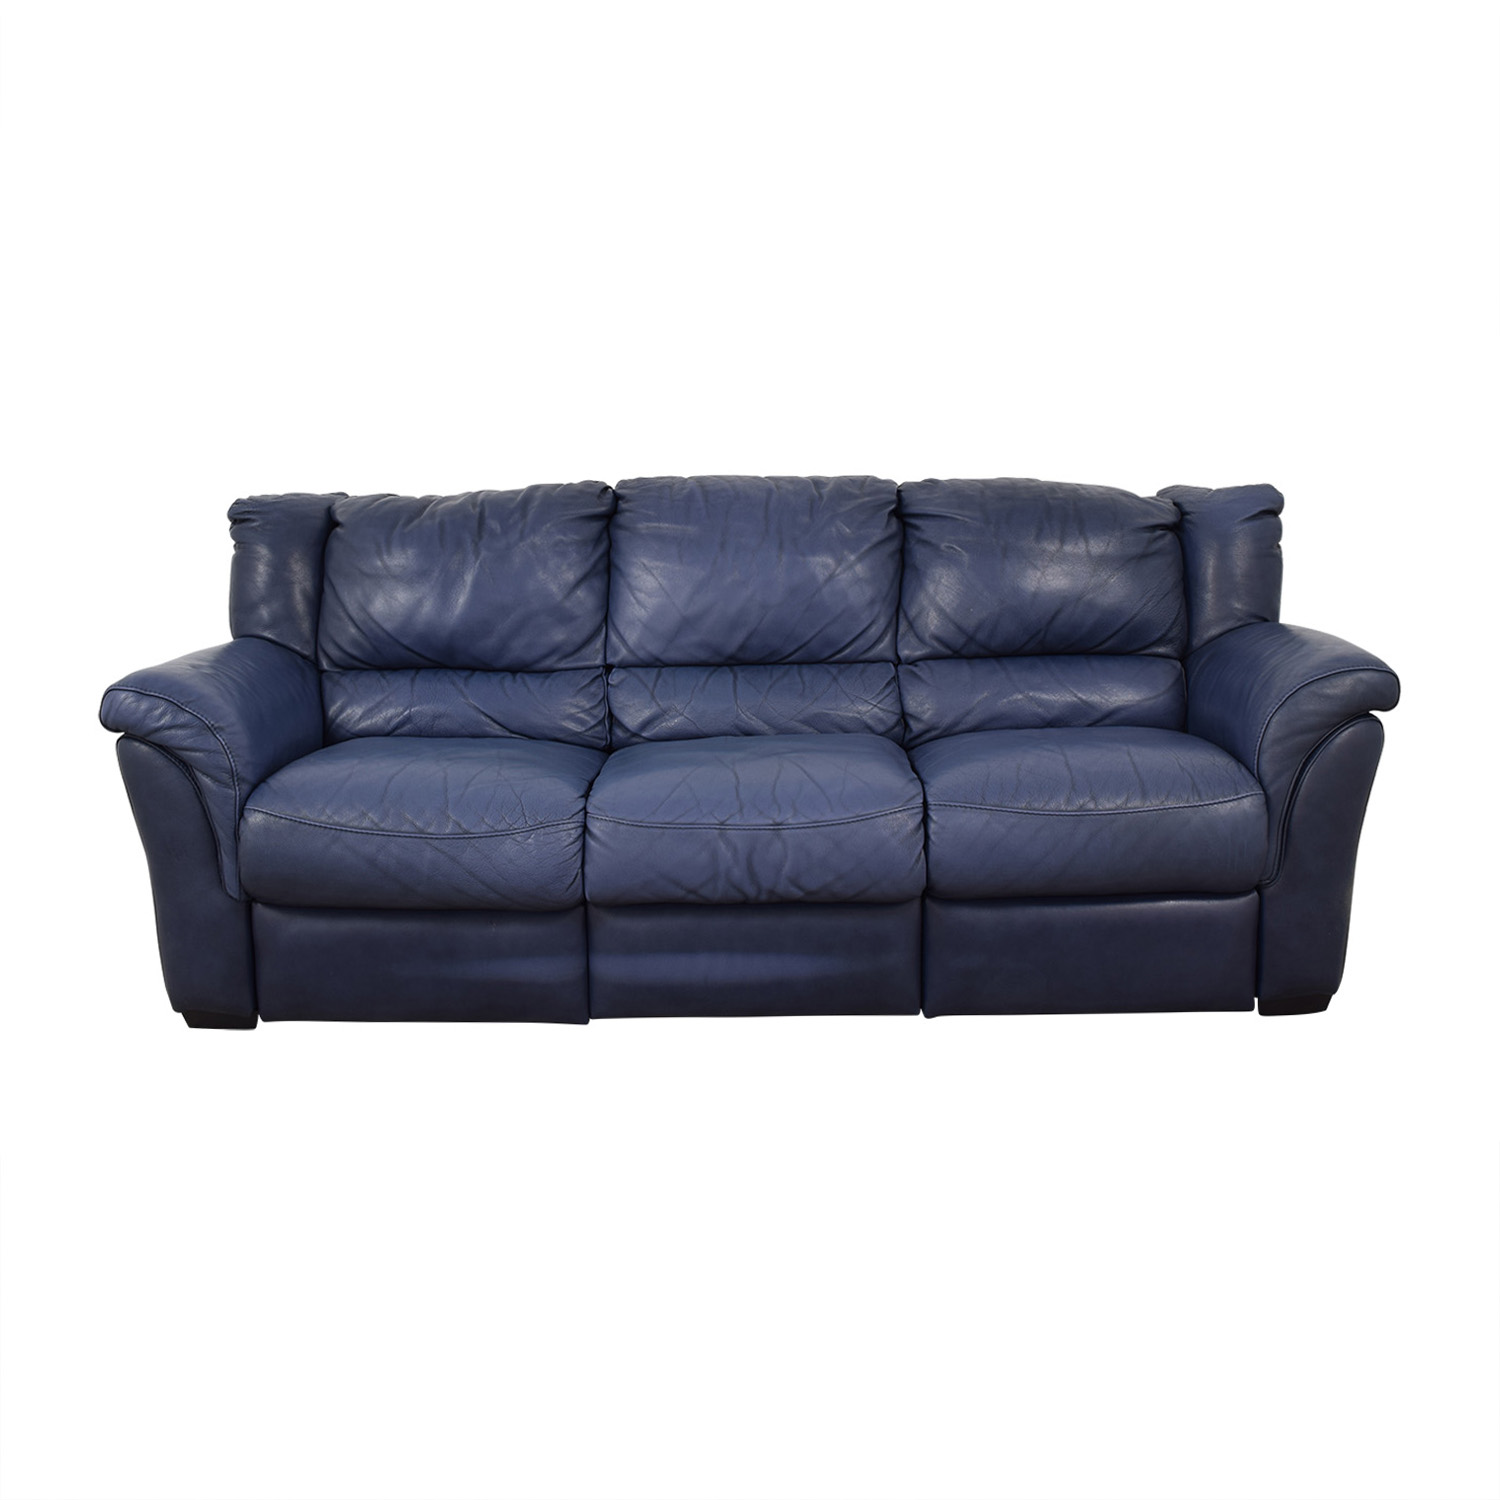 Chateau d'Ax Chateau D'Ax Blue Three-Cushion Reclining Couch Classic Sofas